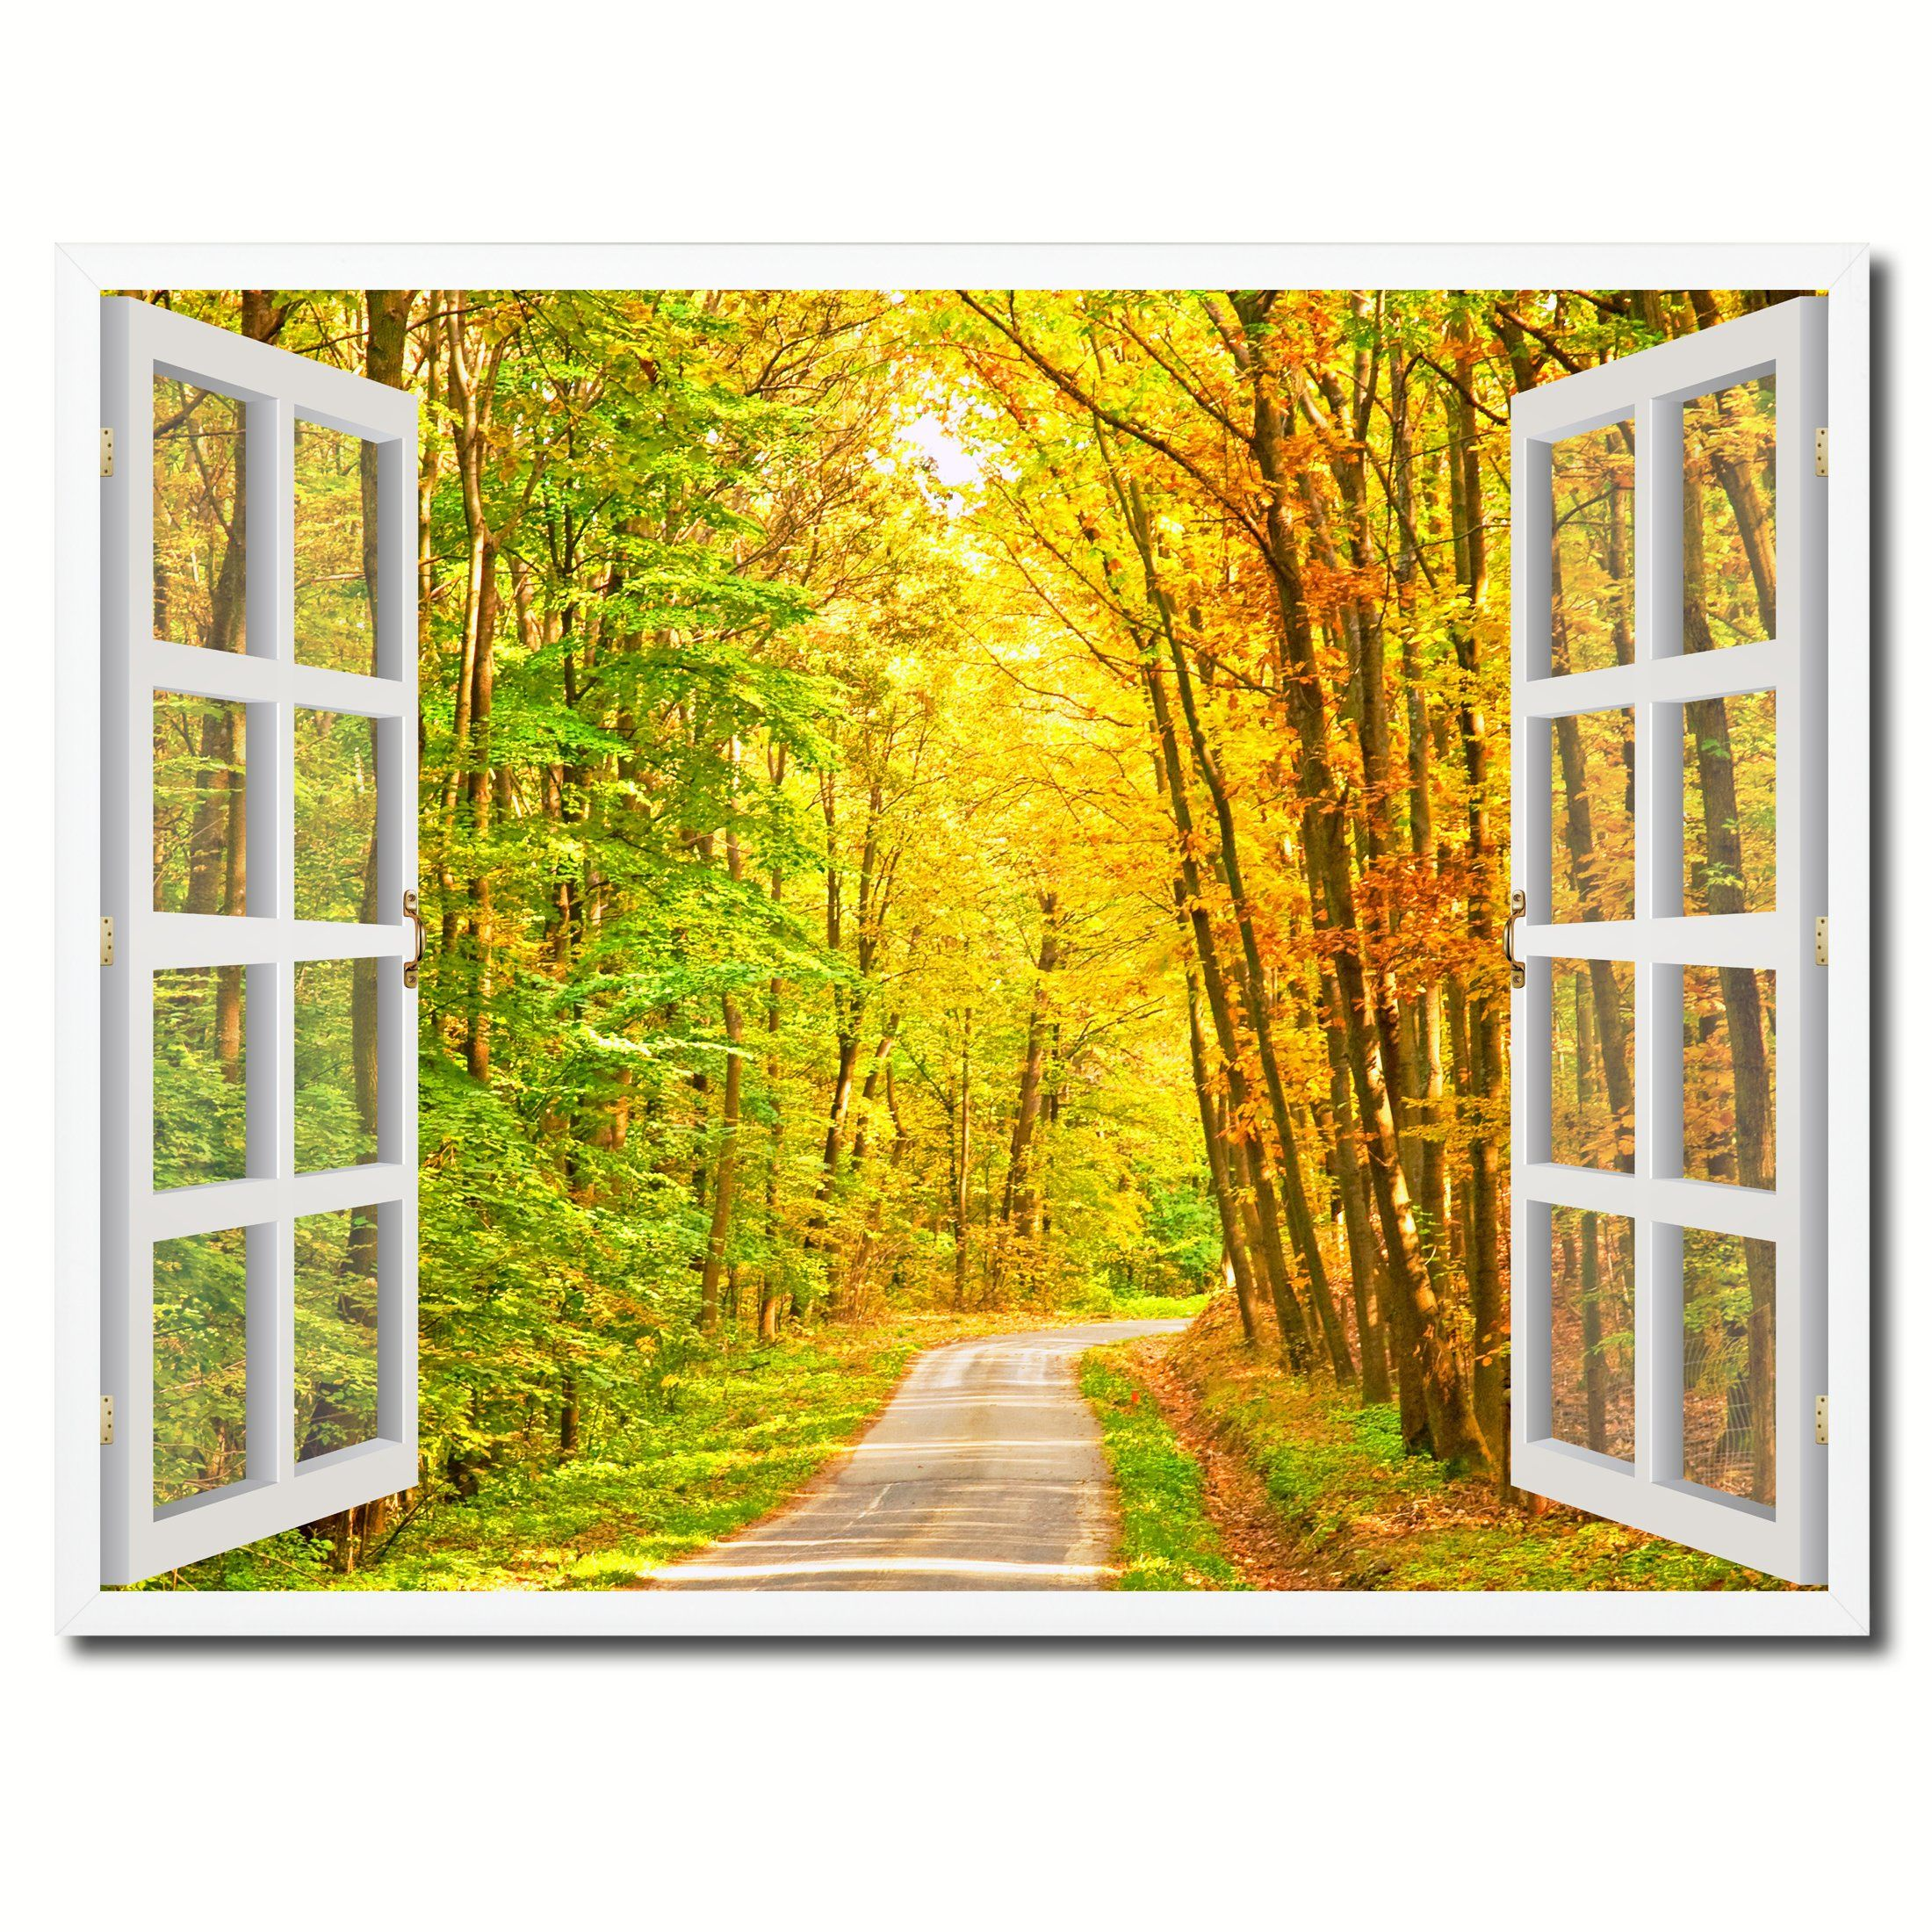 Pathway Autumn Park Fall Forest Picture French Window Framed Canvas ...